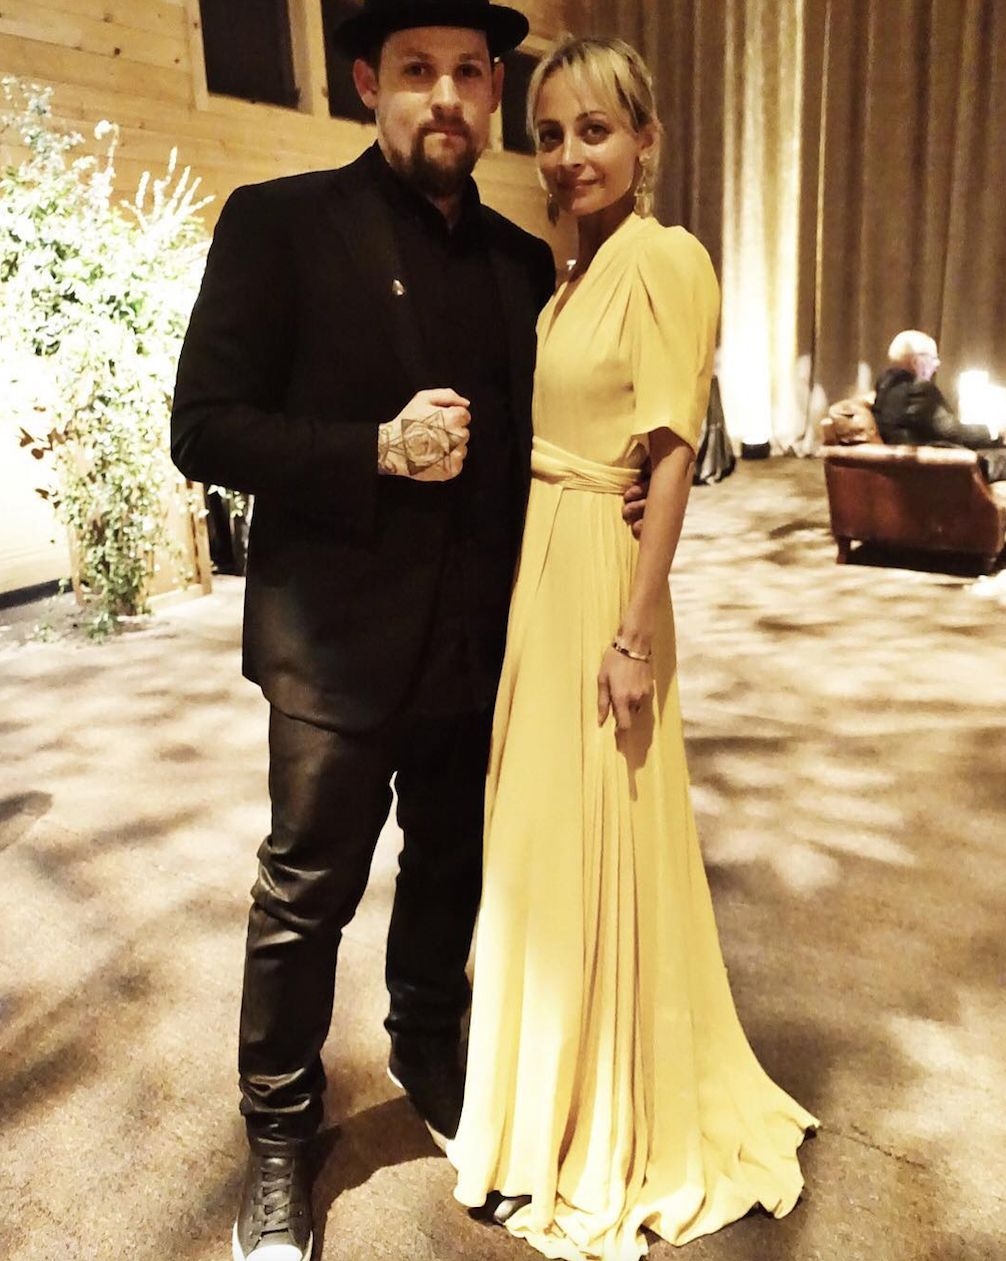 Love that dress- Joel Madden and Nicole Richie Turn a Friend's Wedding Into an Adorable Date Night from InStyle.com